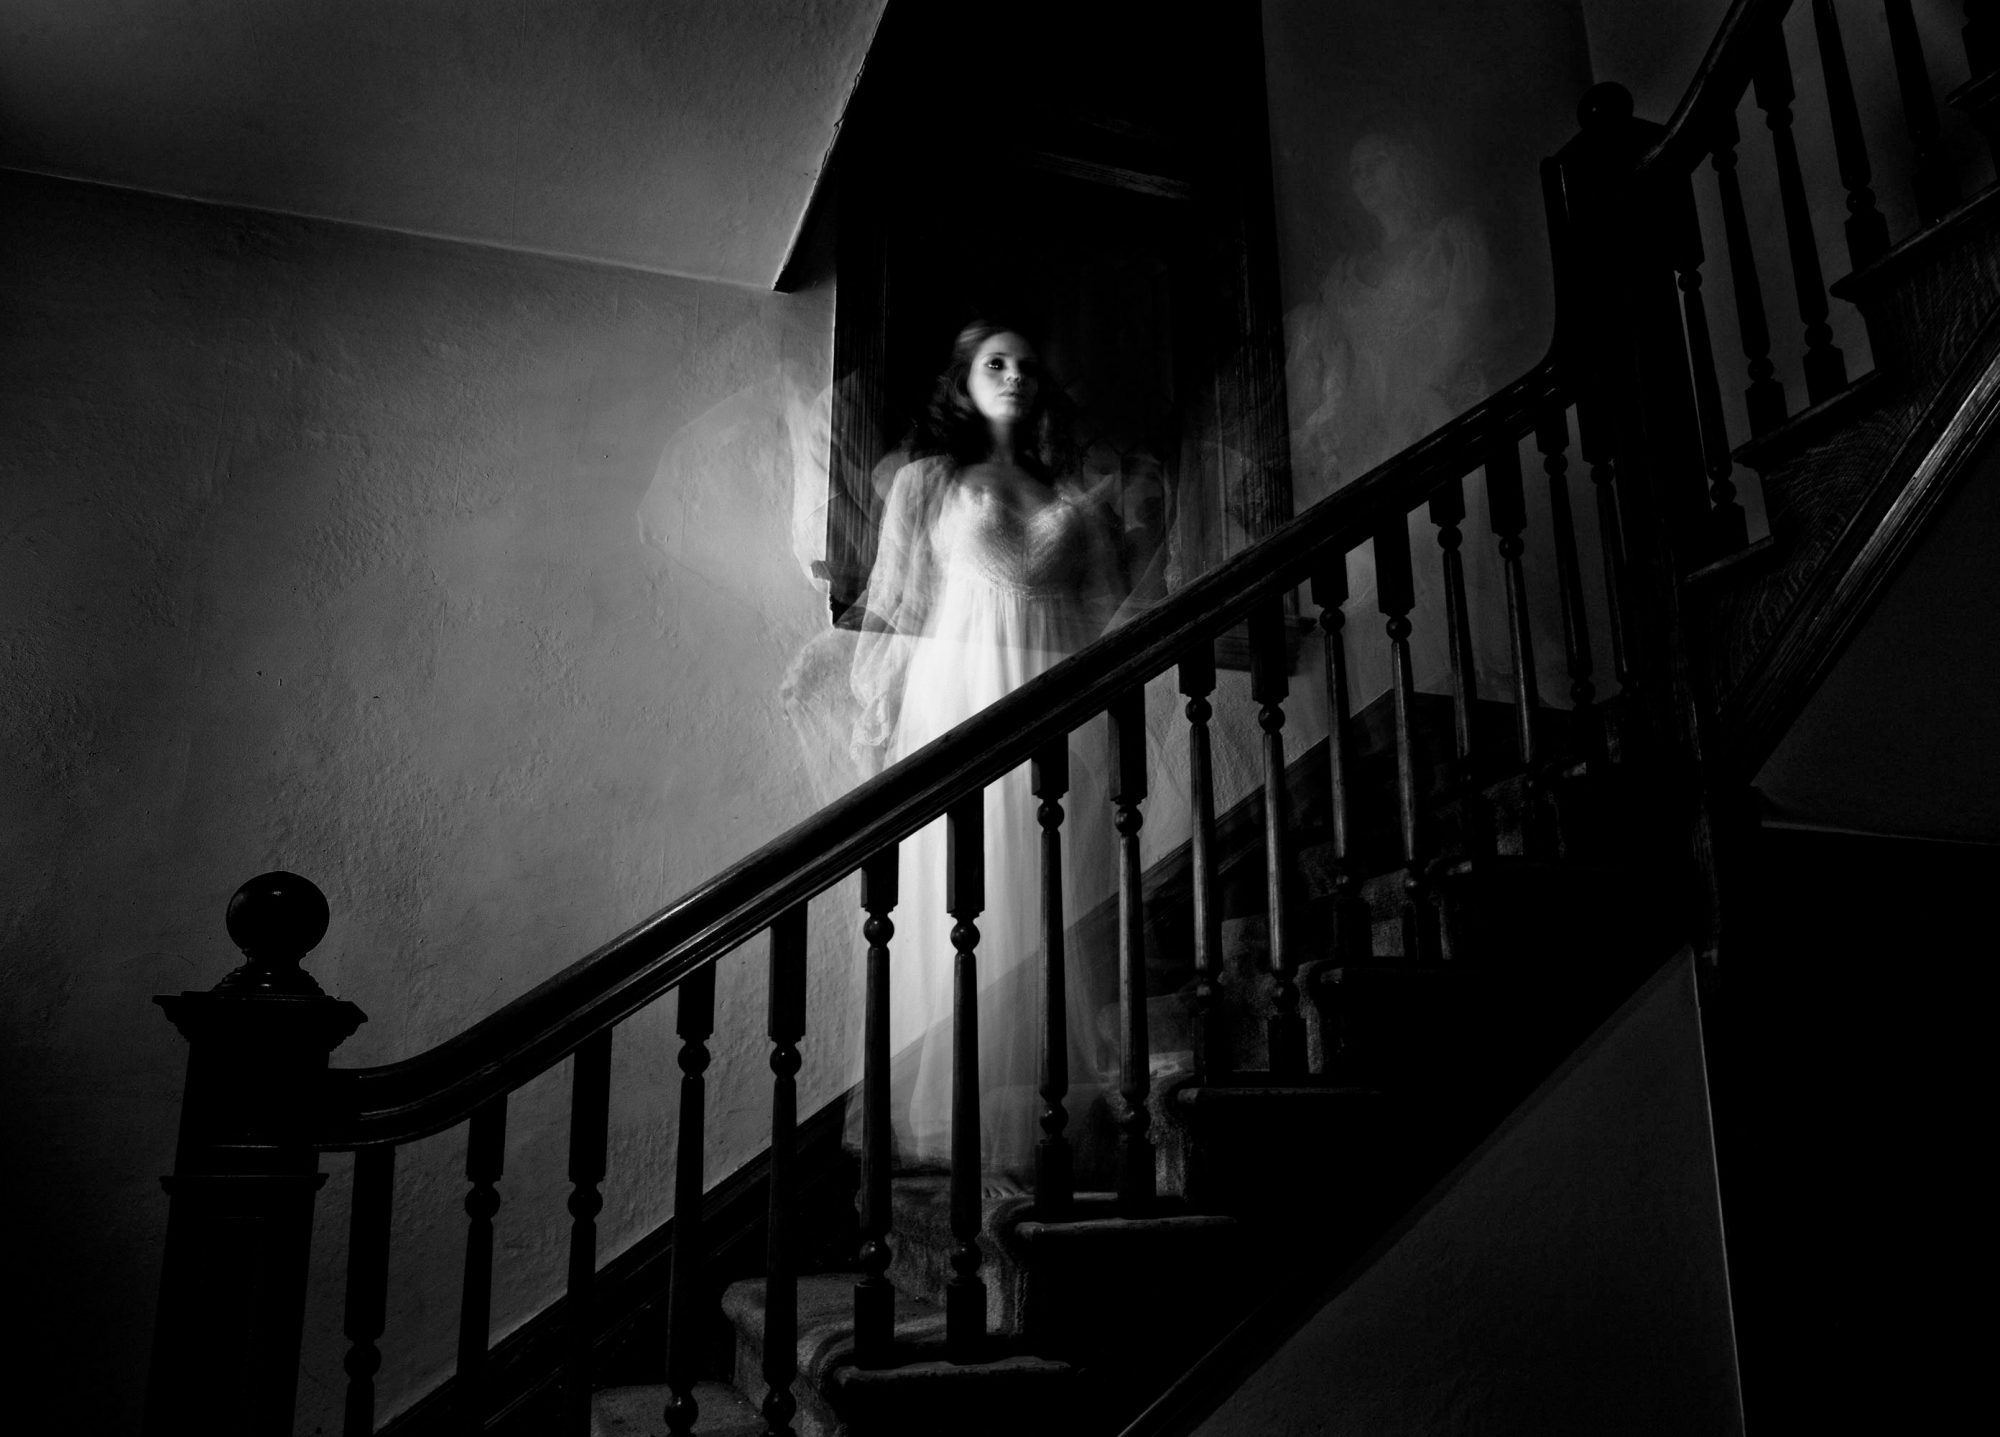 Ghost Woman Standing on Stairs